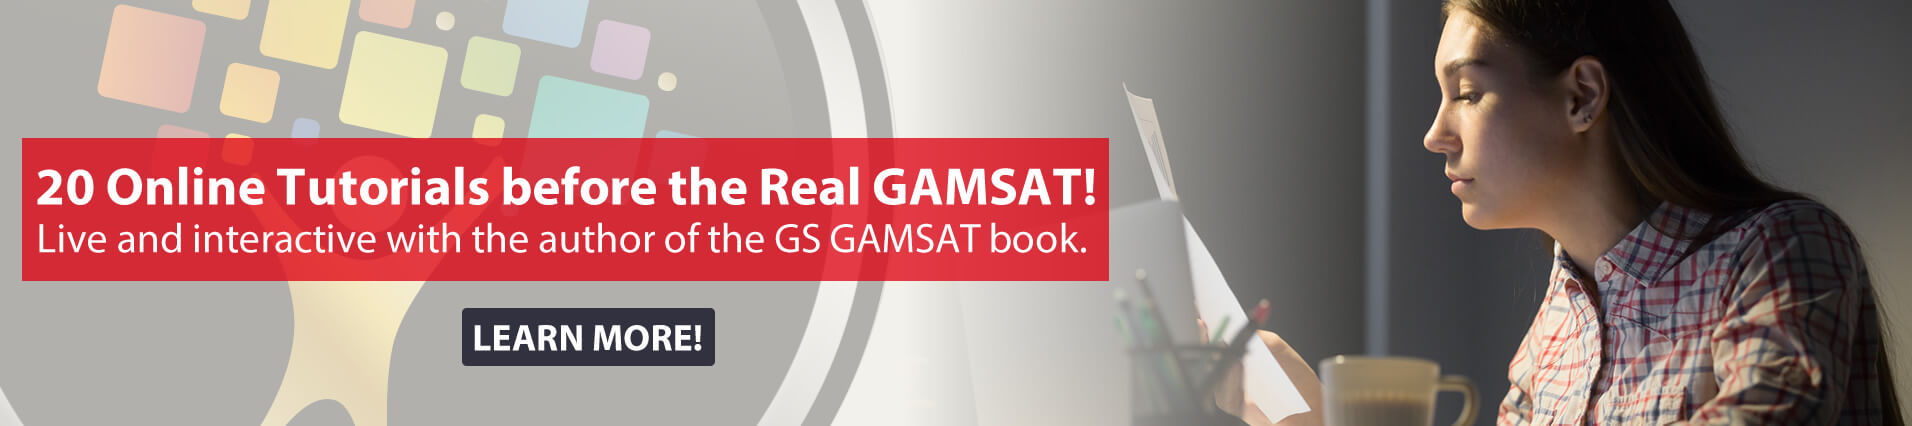 20 Daily Online Tutorials during the 20 Days before the March GAMSAT!